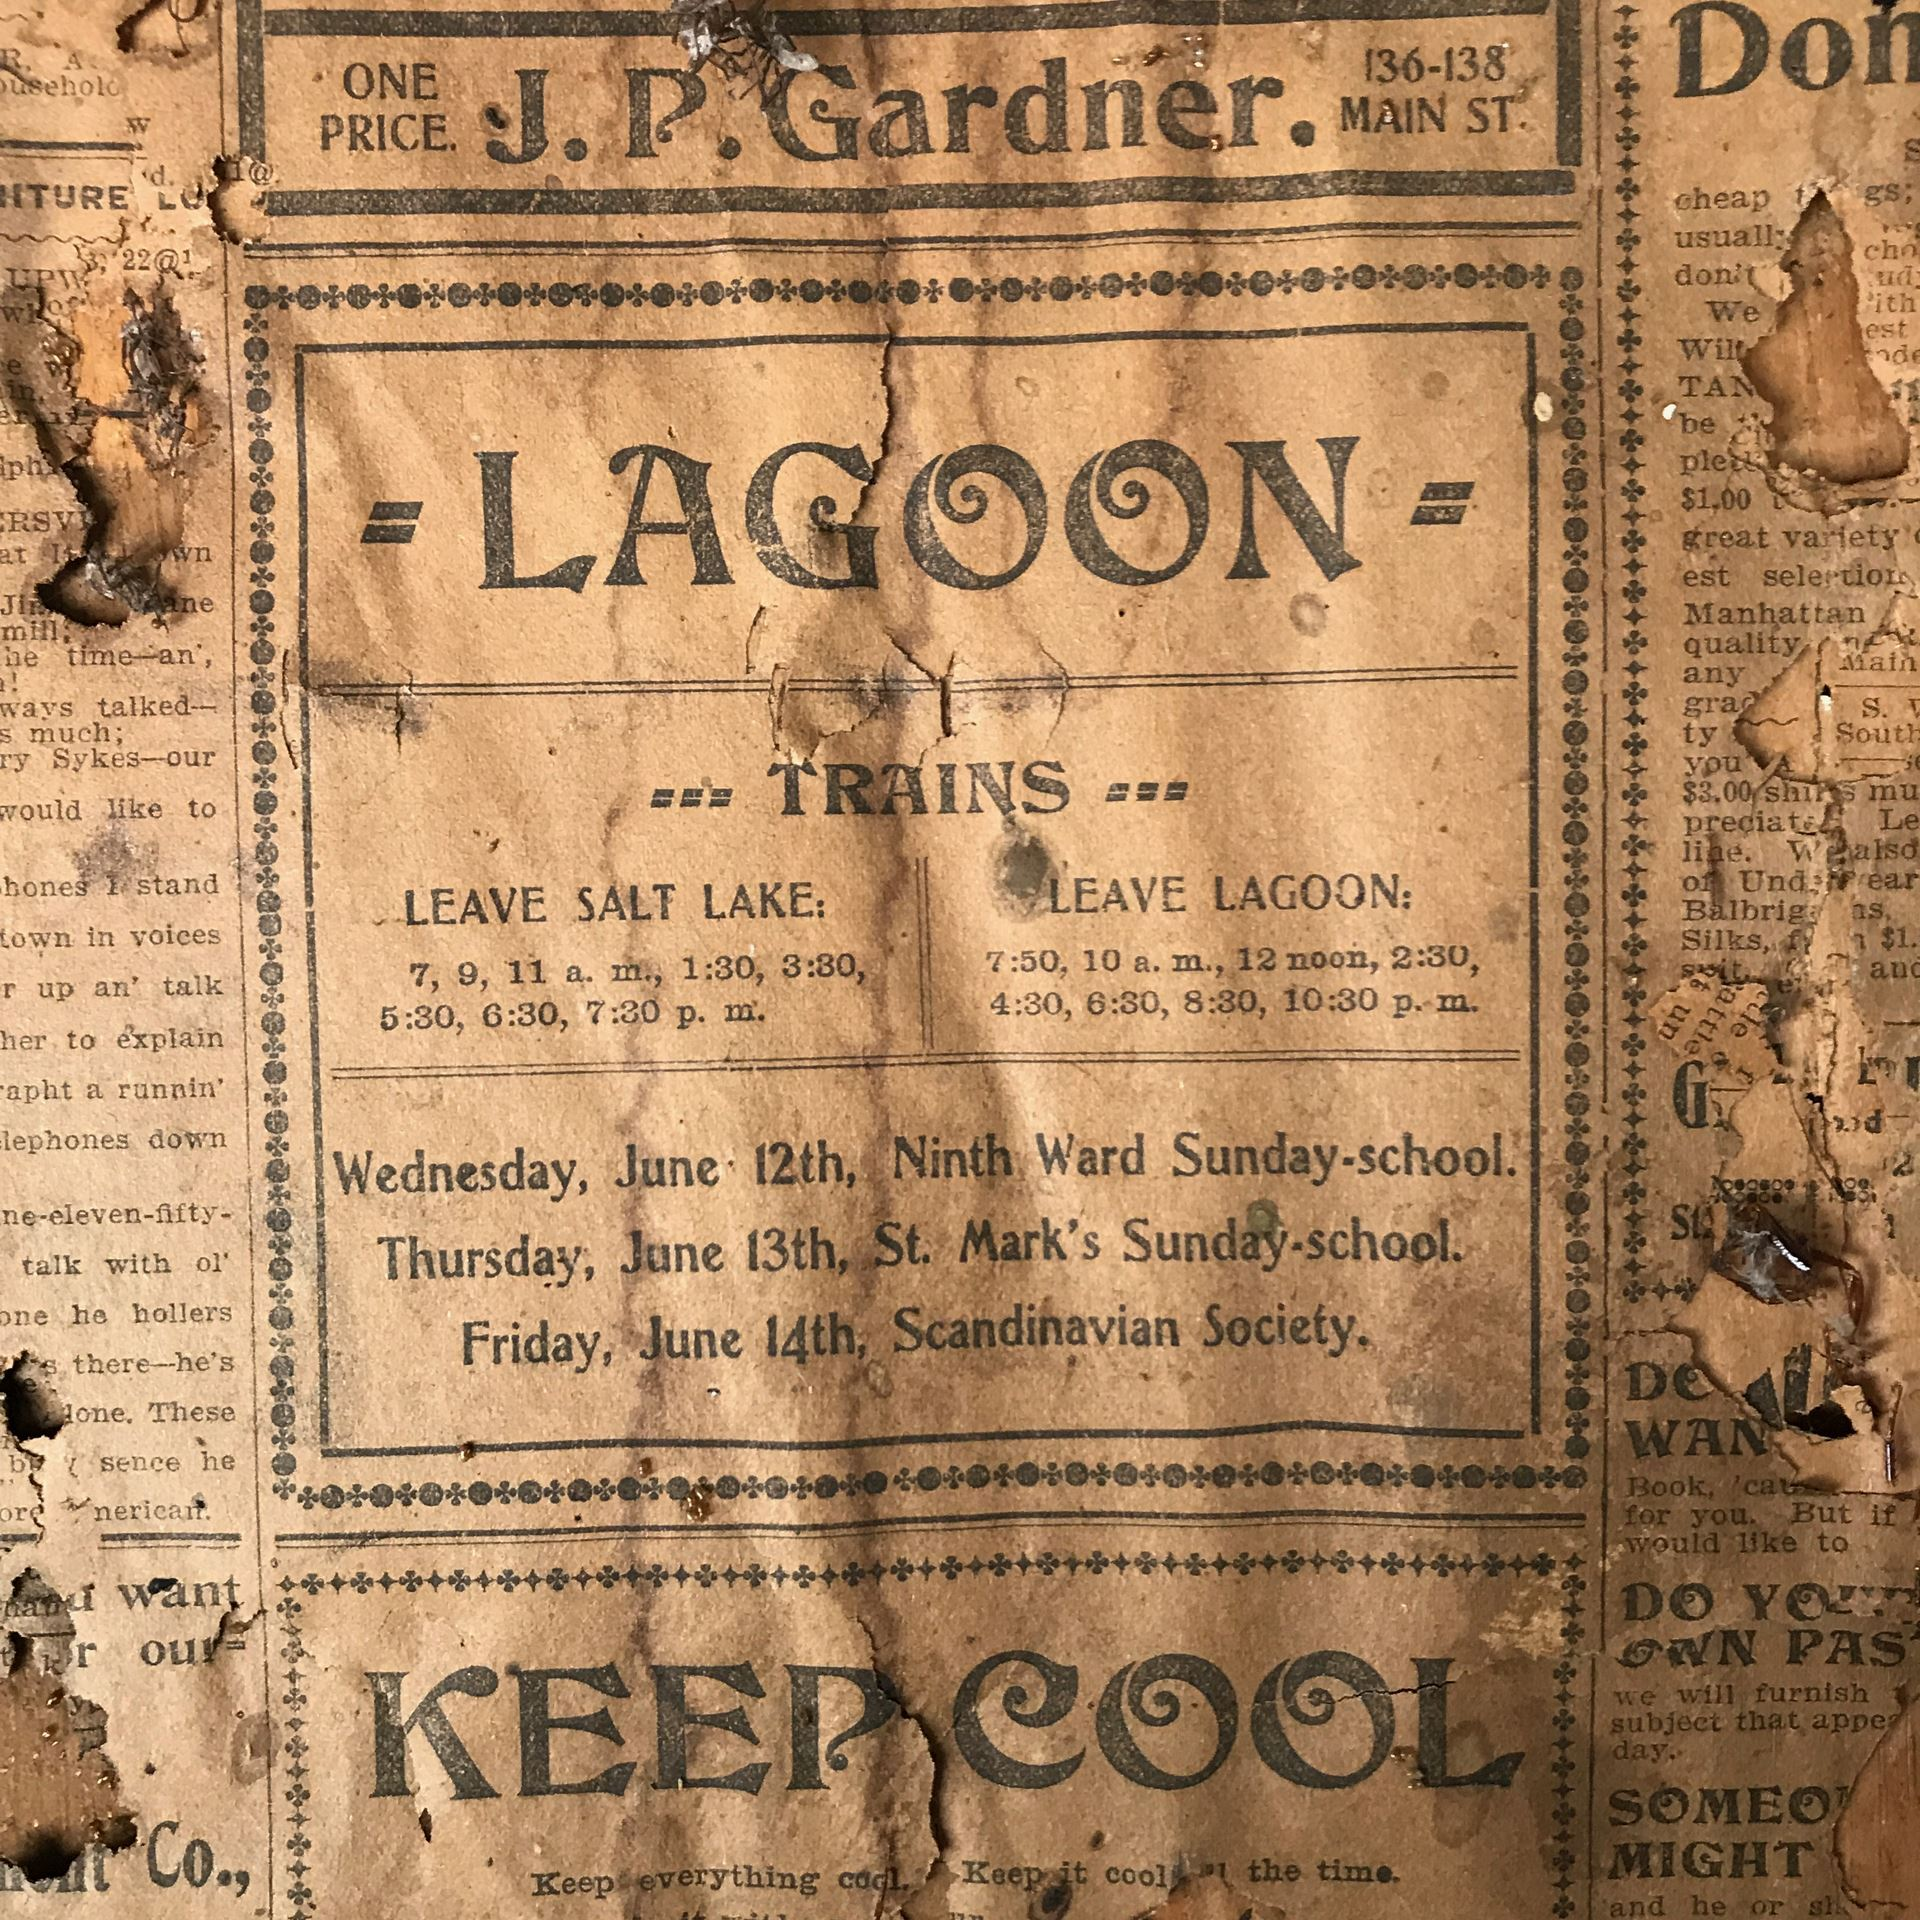 - A section from the newspaper insulation showing the Lagoon train schedule.